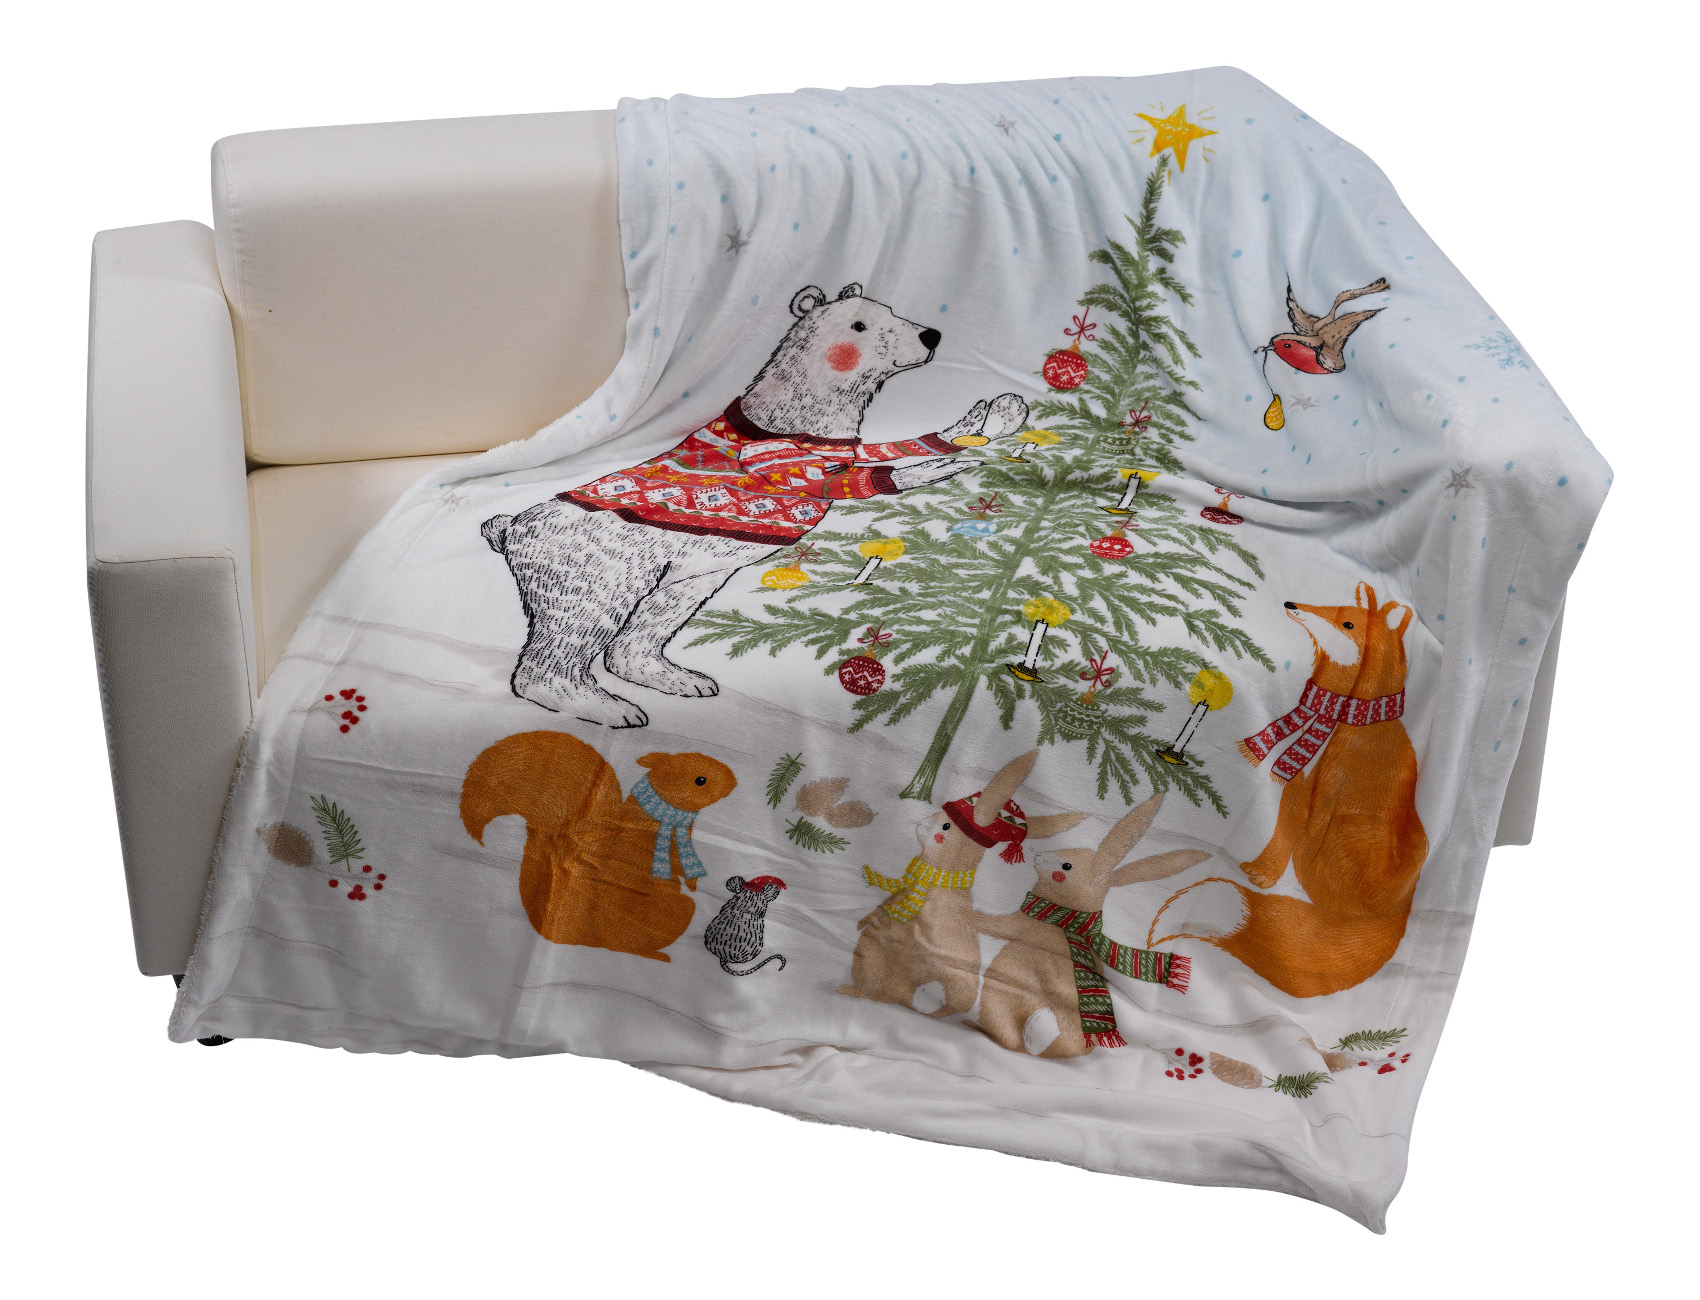 Night Before Christmas Blanket Soft Sherpa Fleece Festive Xmas Throw ...